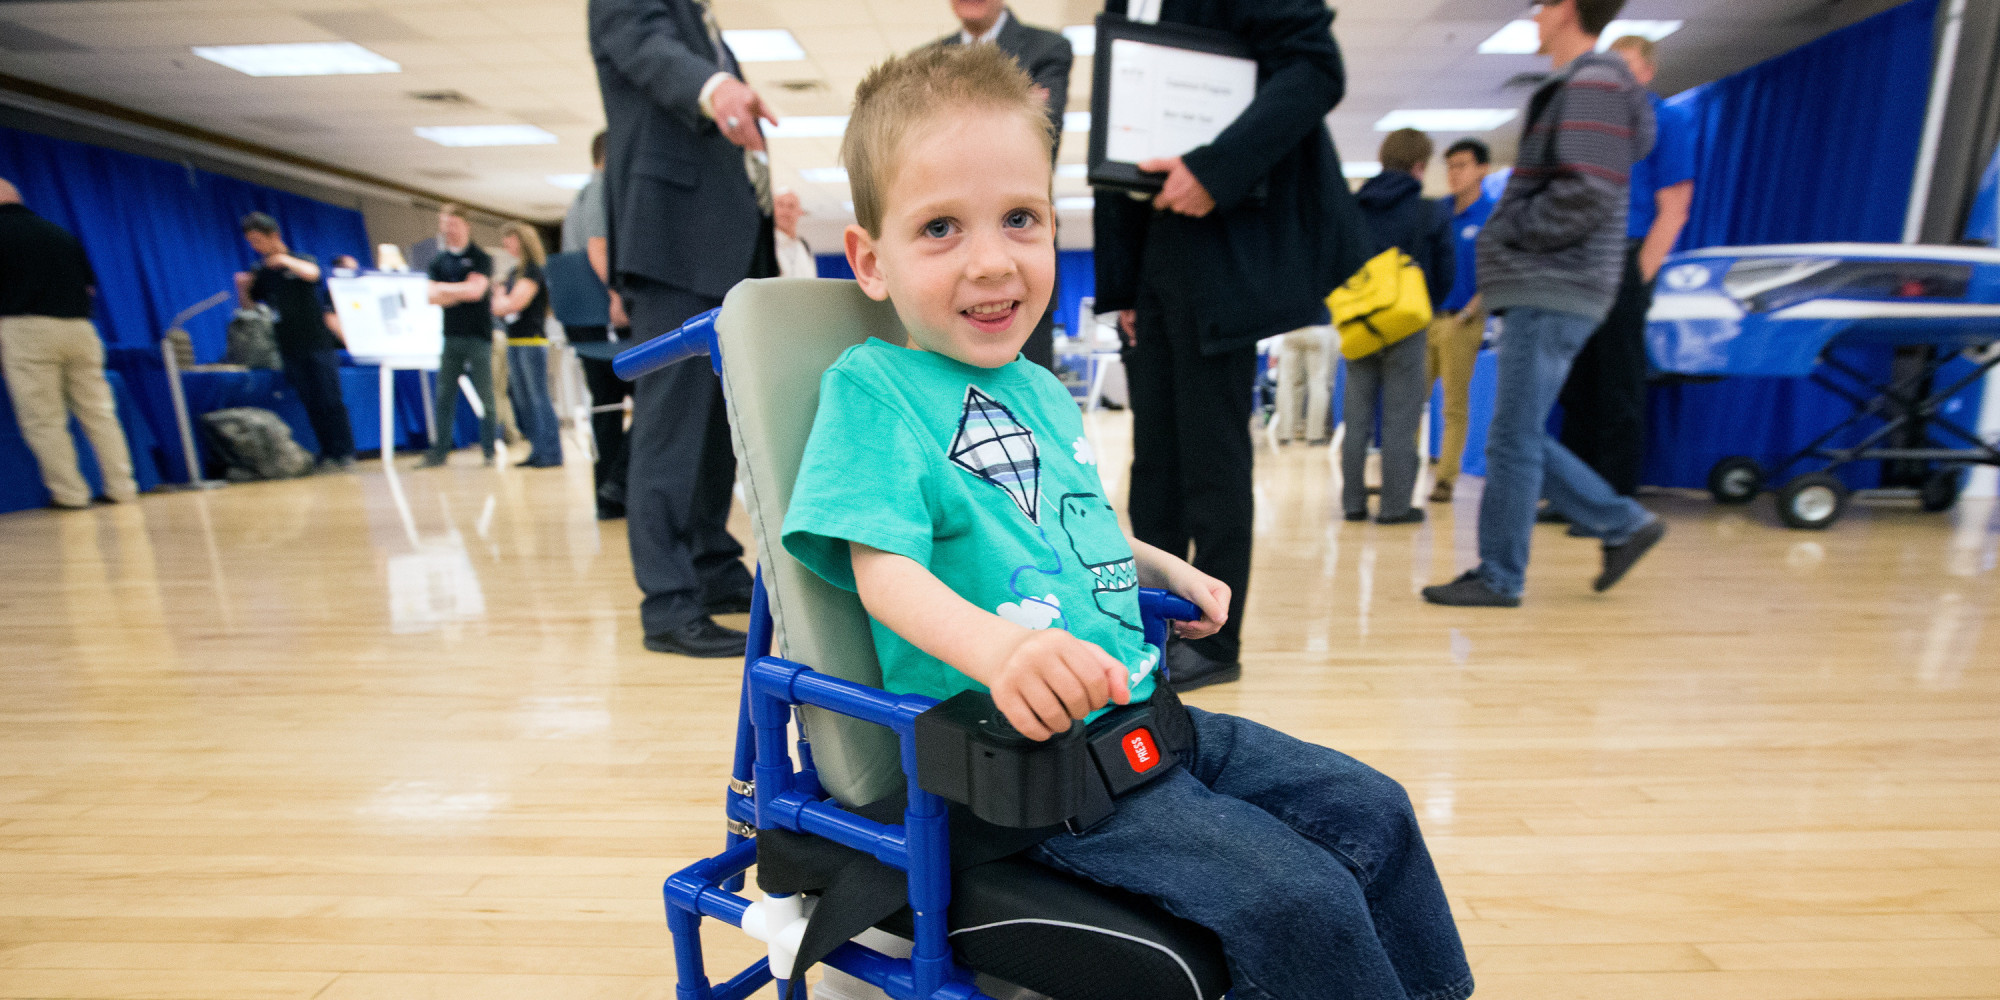 Power wheelchair kids - Toddlers With Muscle Disease Get Tiny Wheelchairs So They Can Just Be One Of The Kids Huffpost